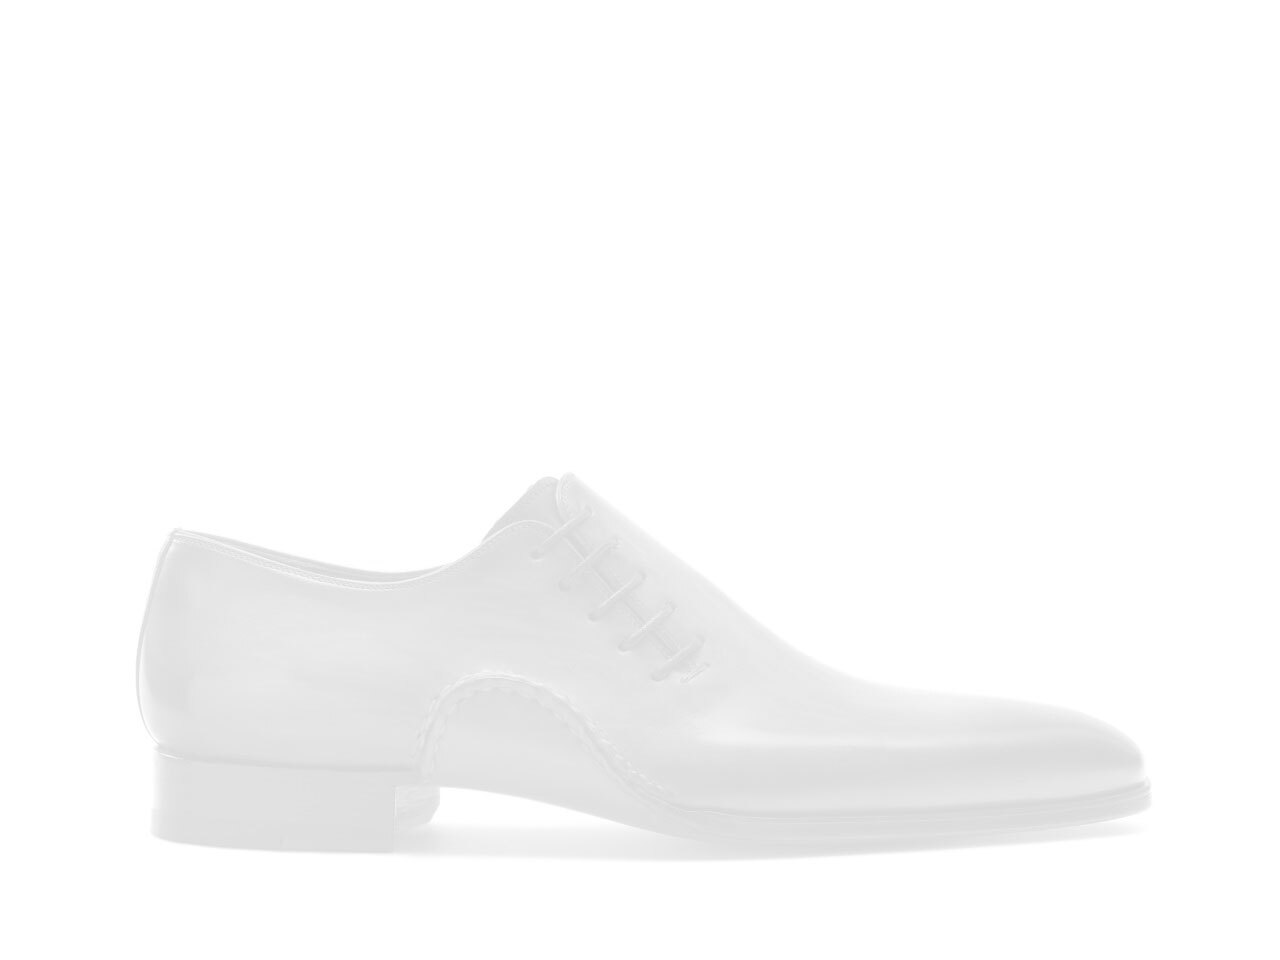 Ruby business casual socks - Magnanni